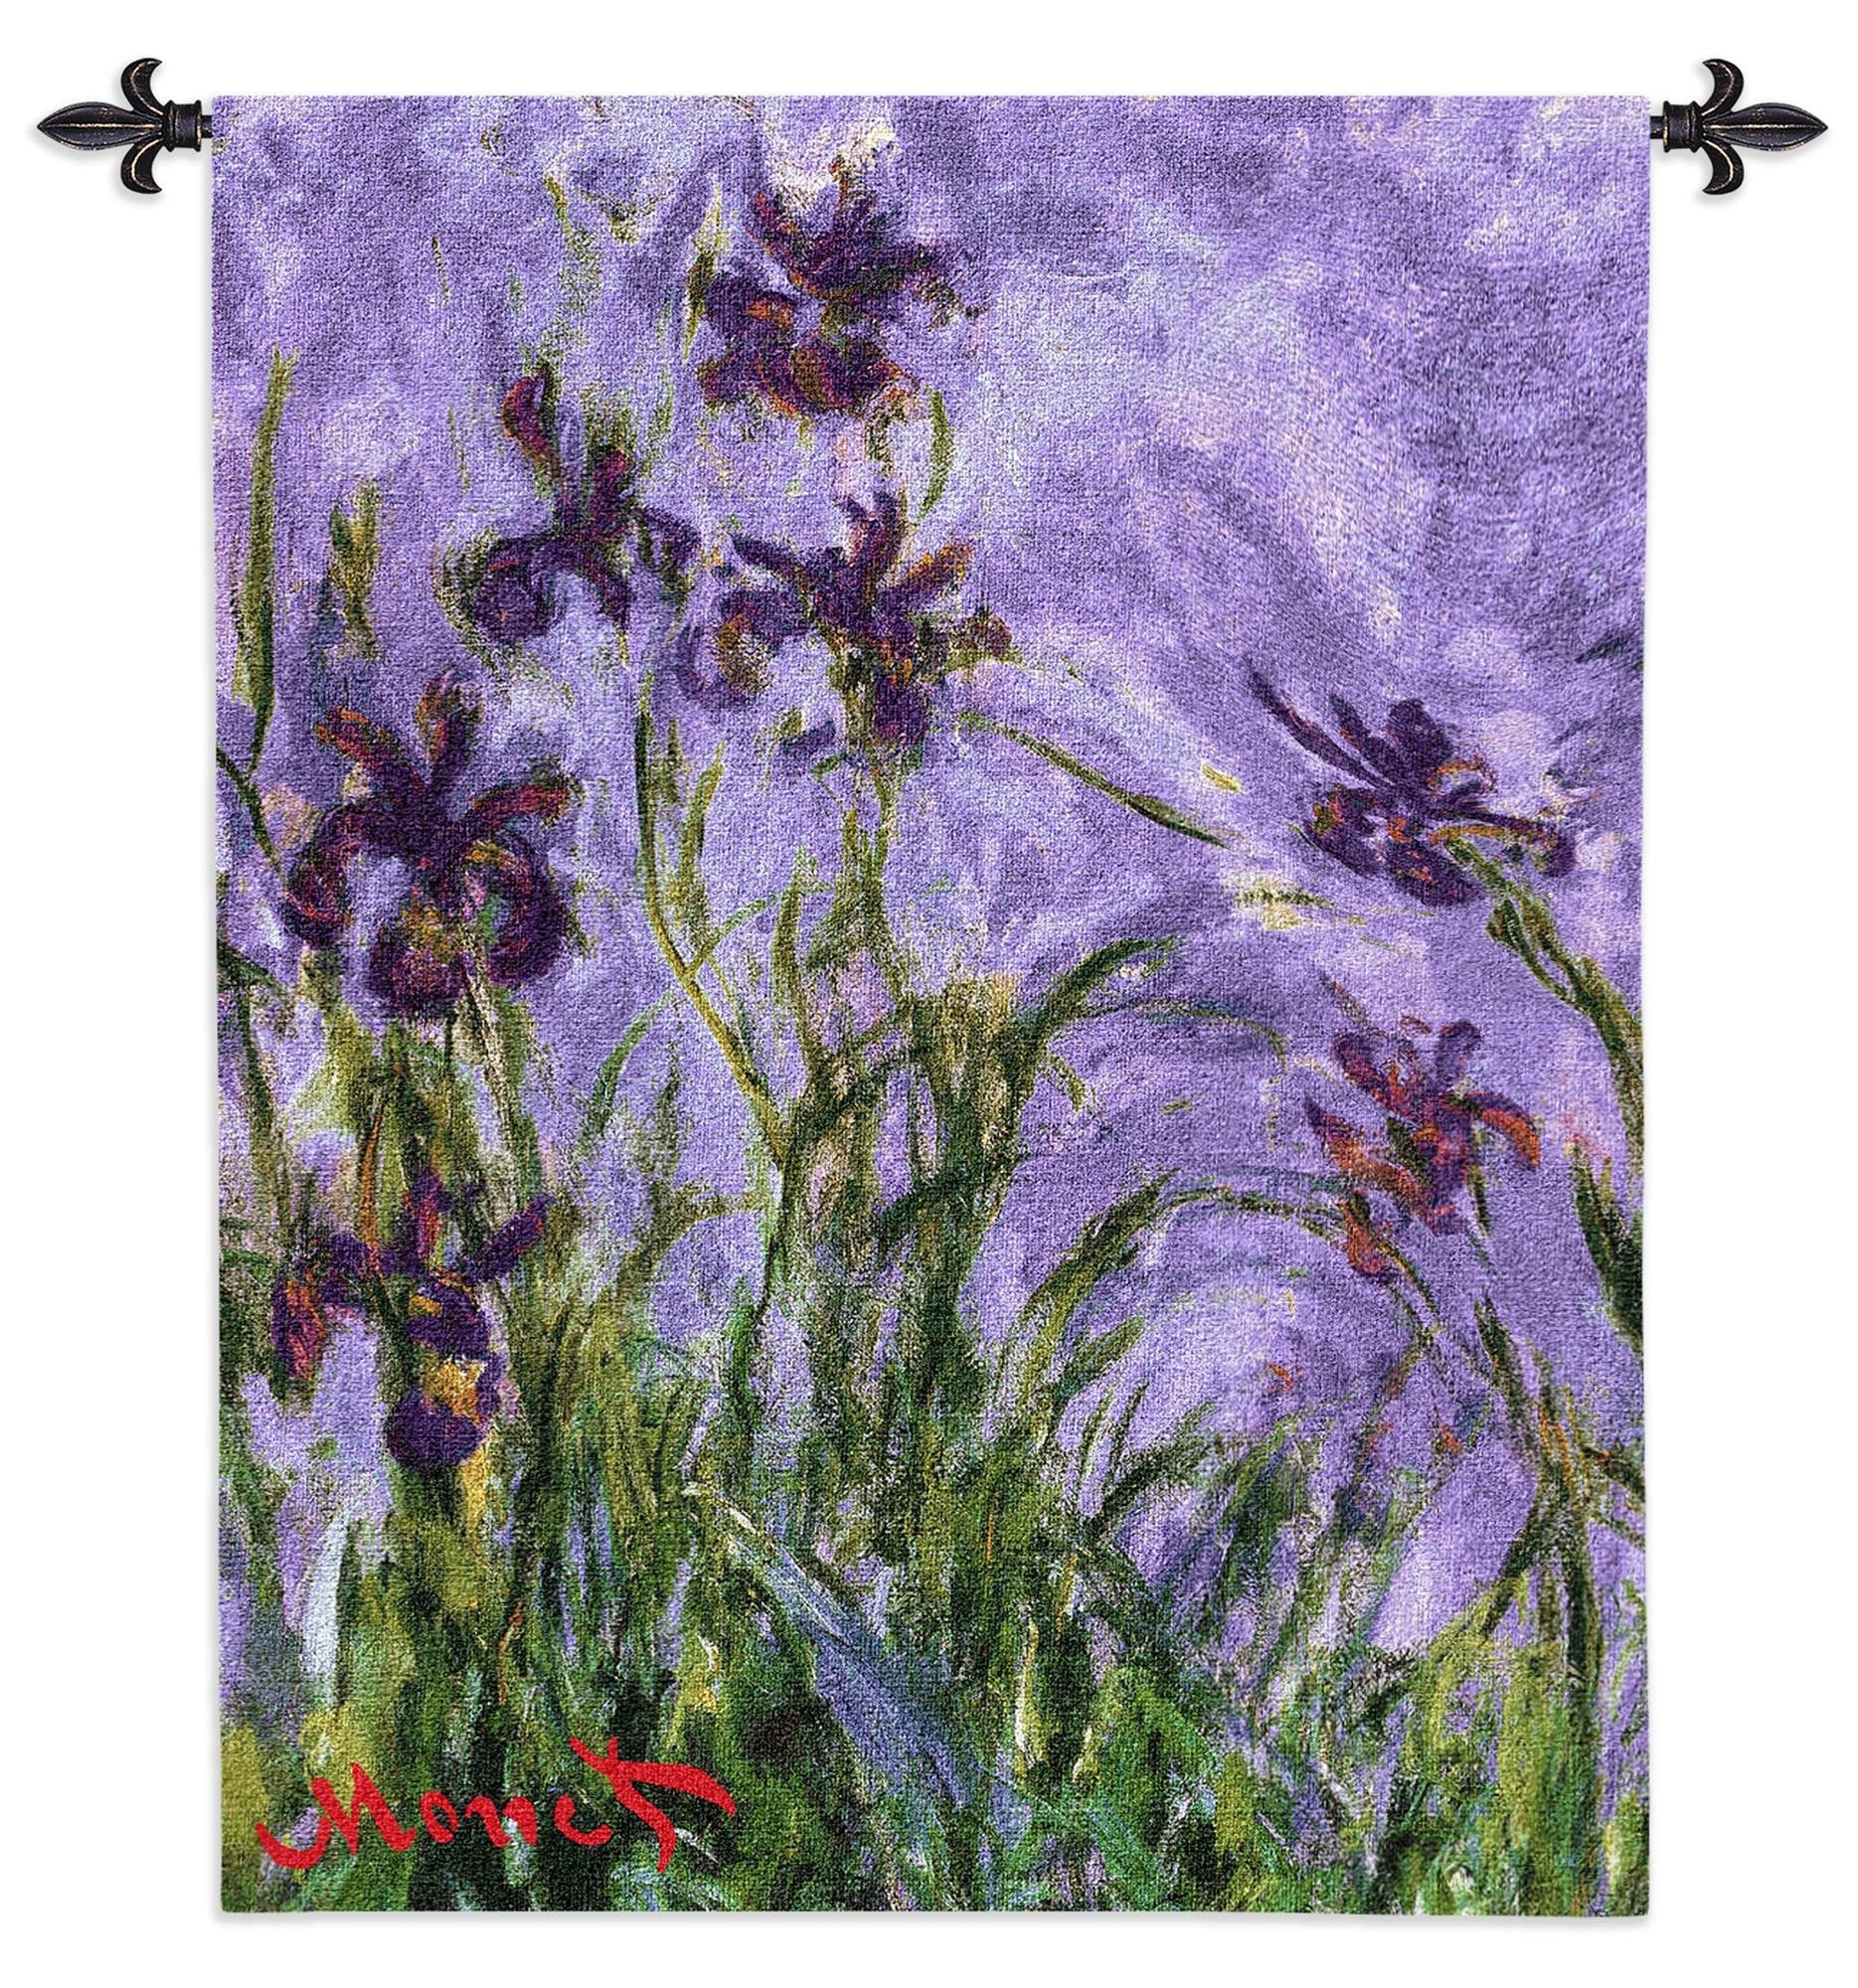 Purple Monet Iris Flowers Woven Wall Hanging